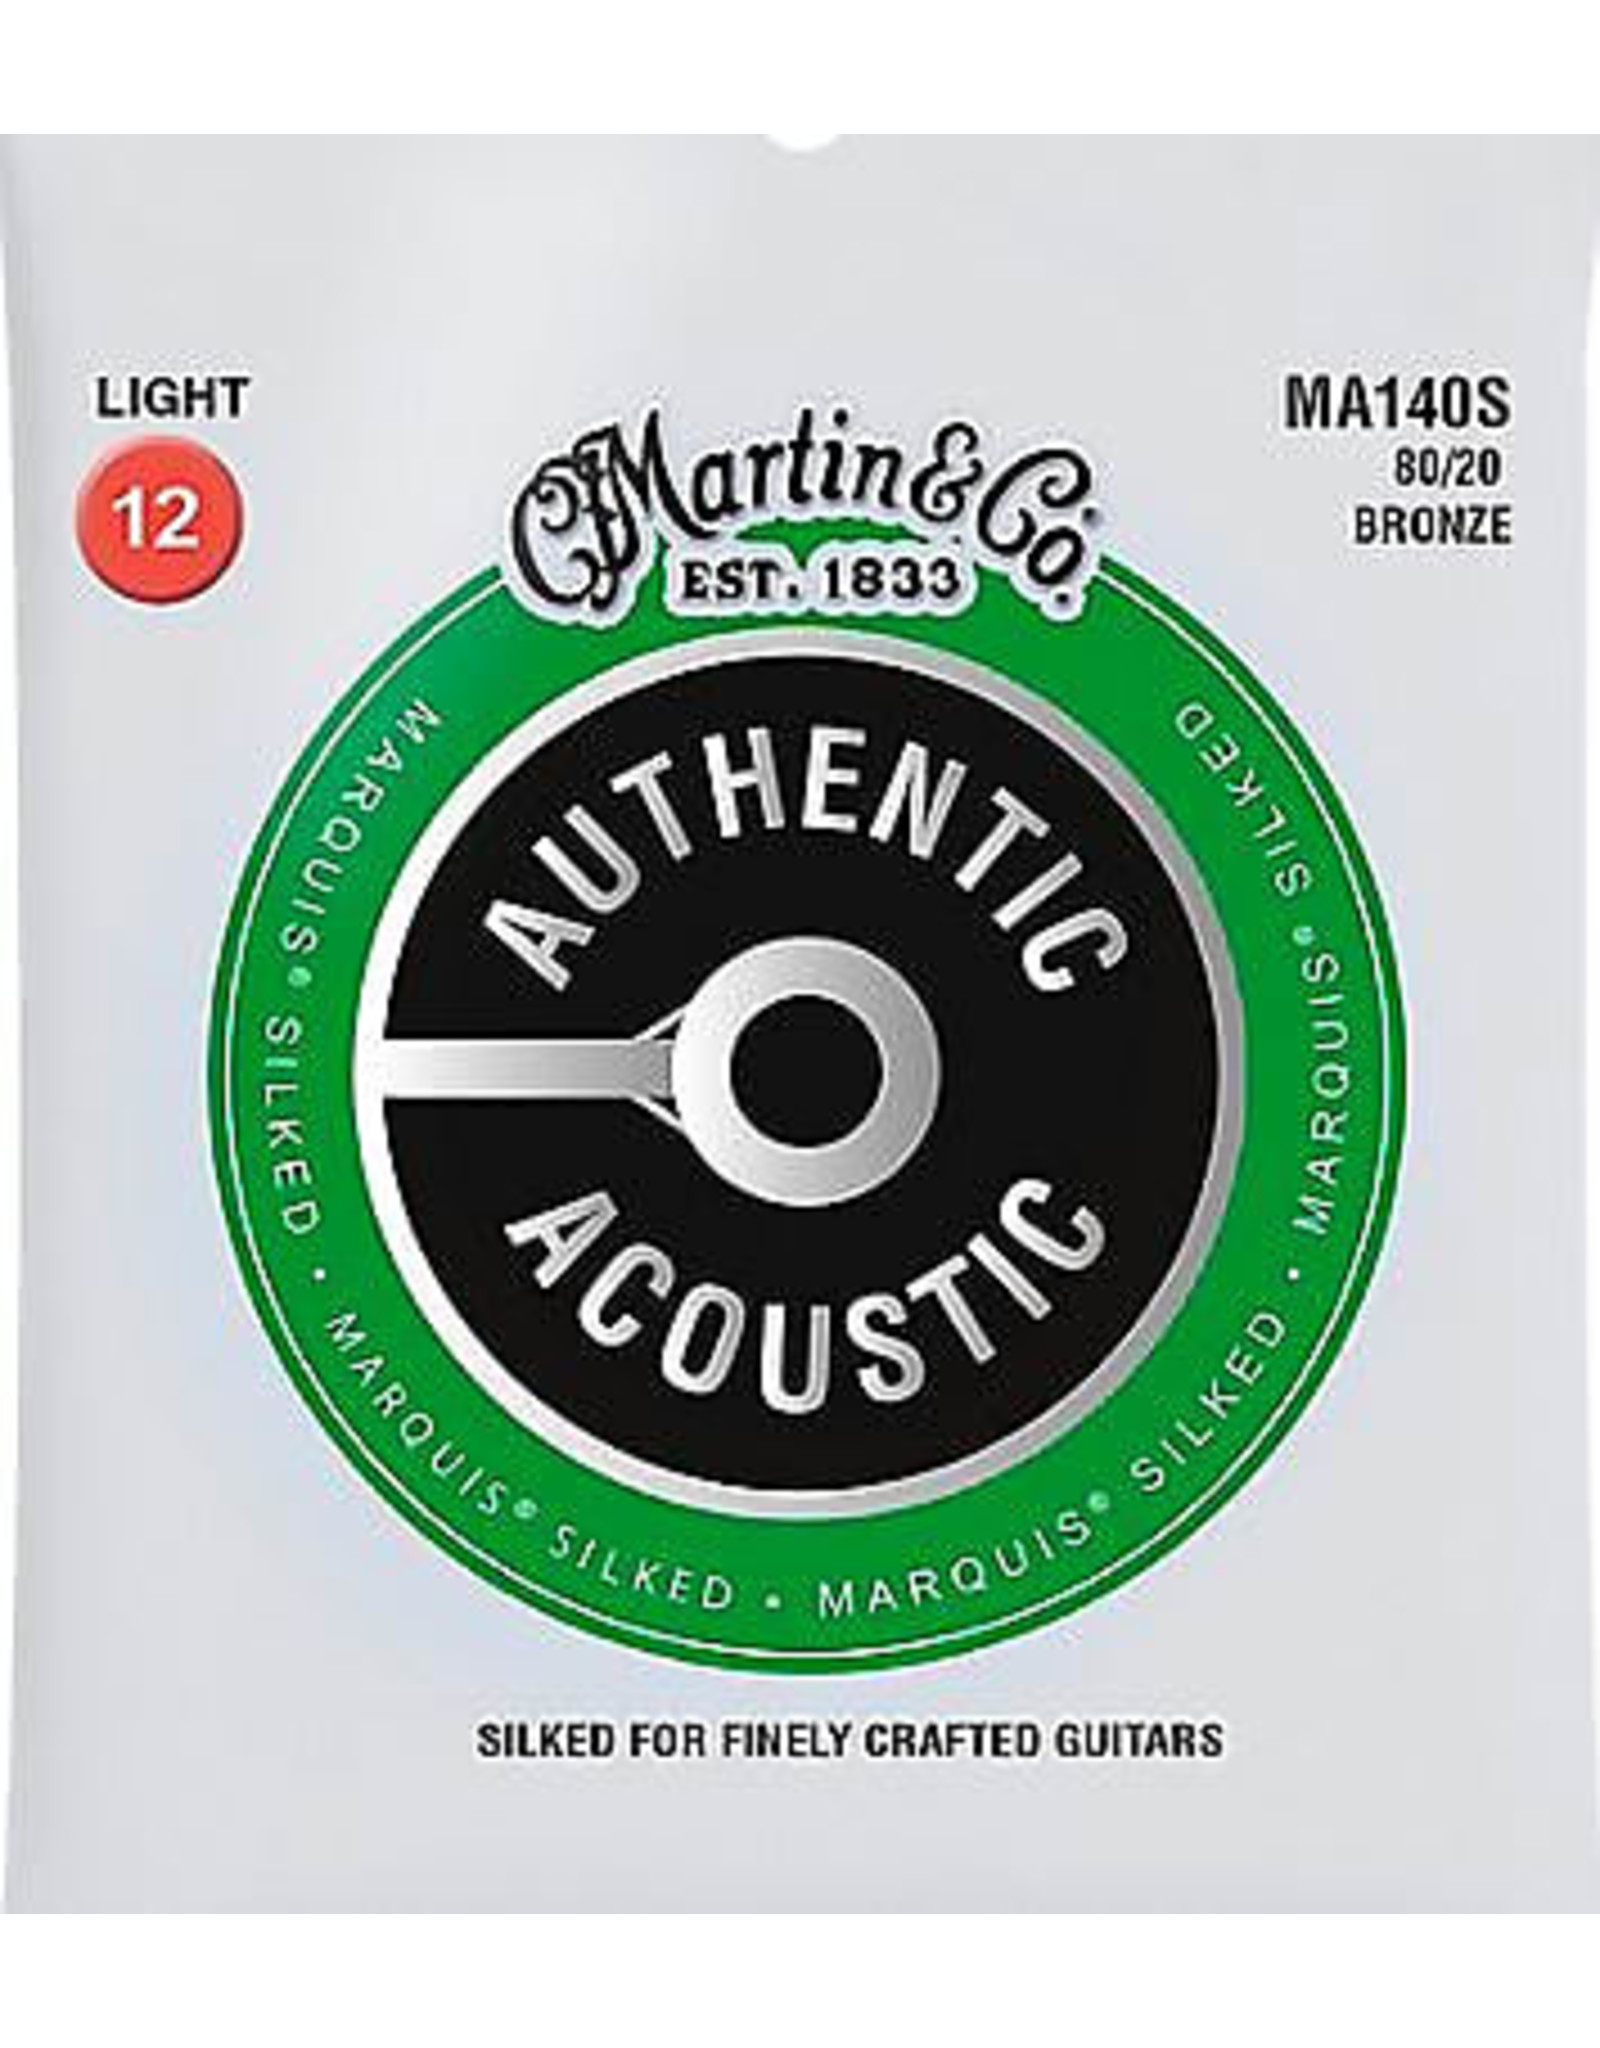 Martin & Co Martin MA140S Marquis 80/20 Bronze Light Authentic Acoustic Silked Guitar Strings